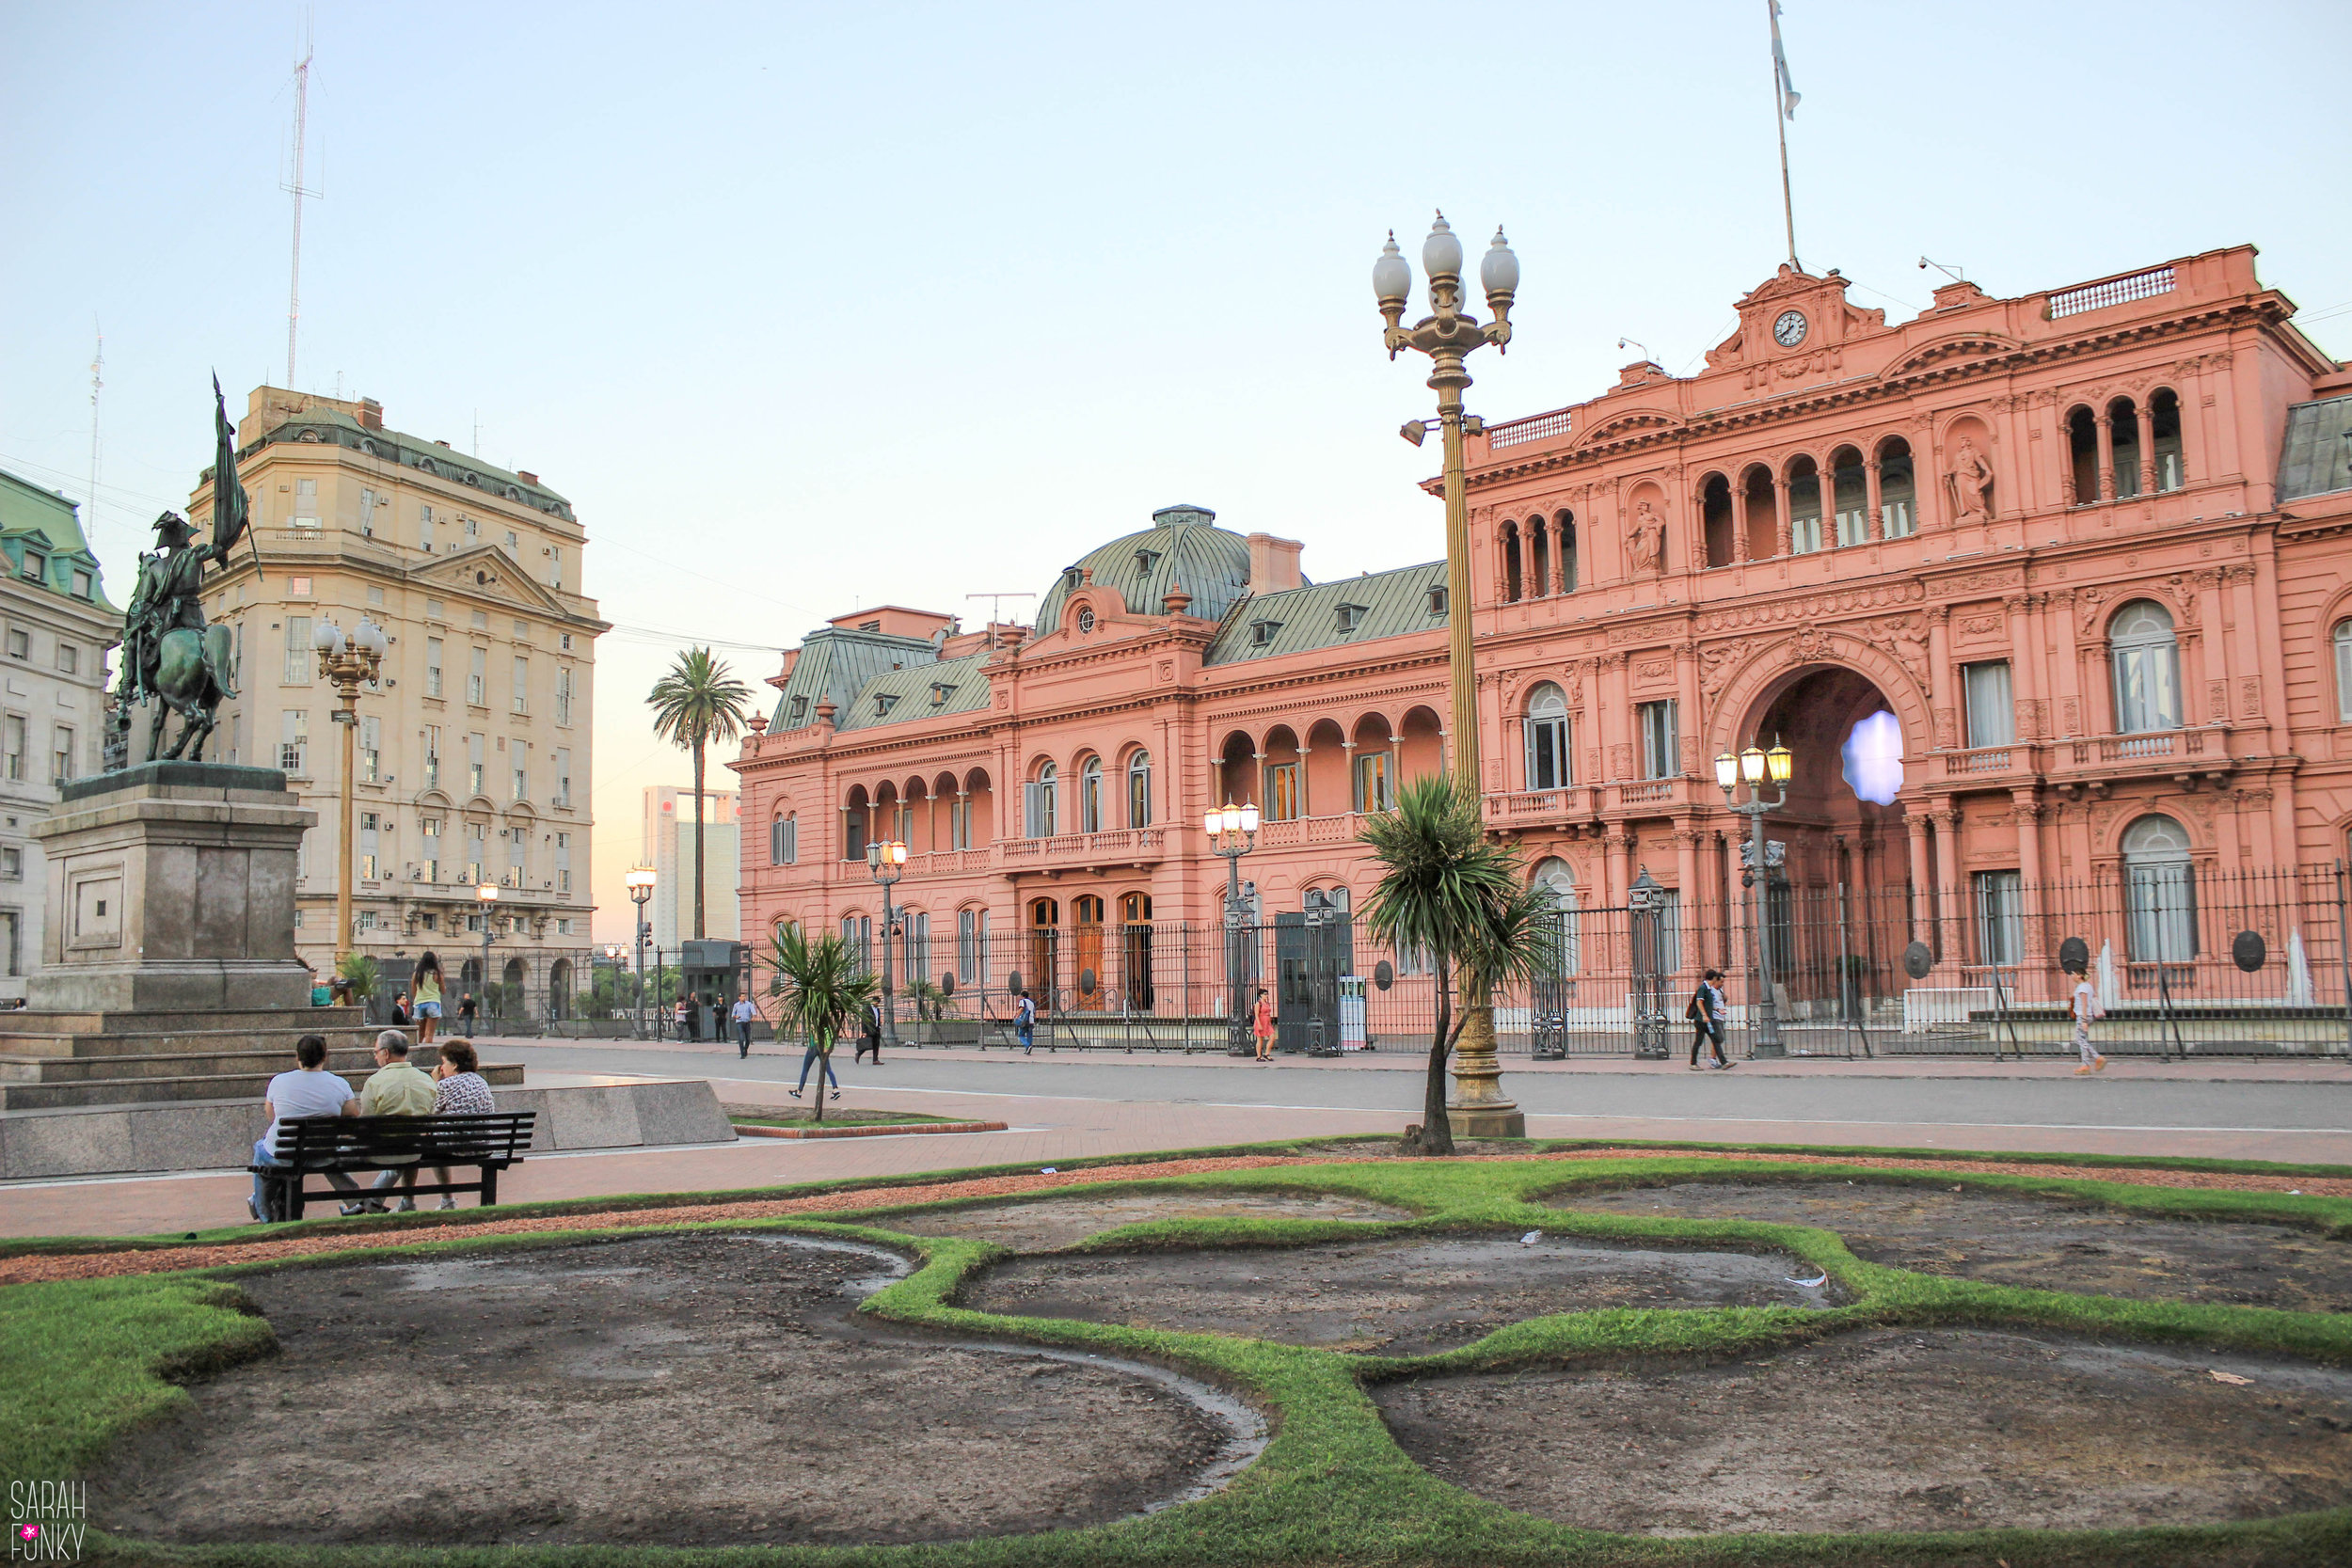 Portenos relax on a bench in the plaza outside of the Casa Rosada